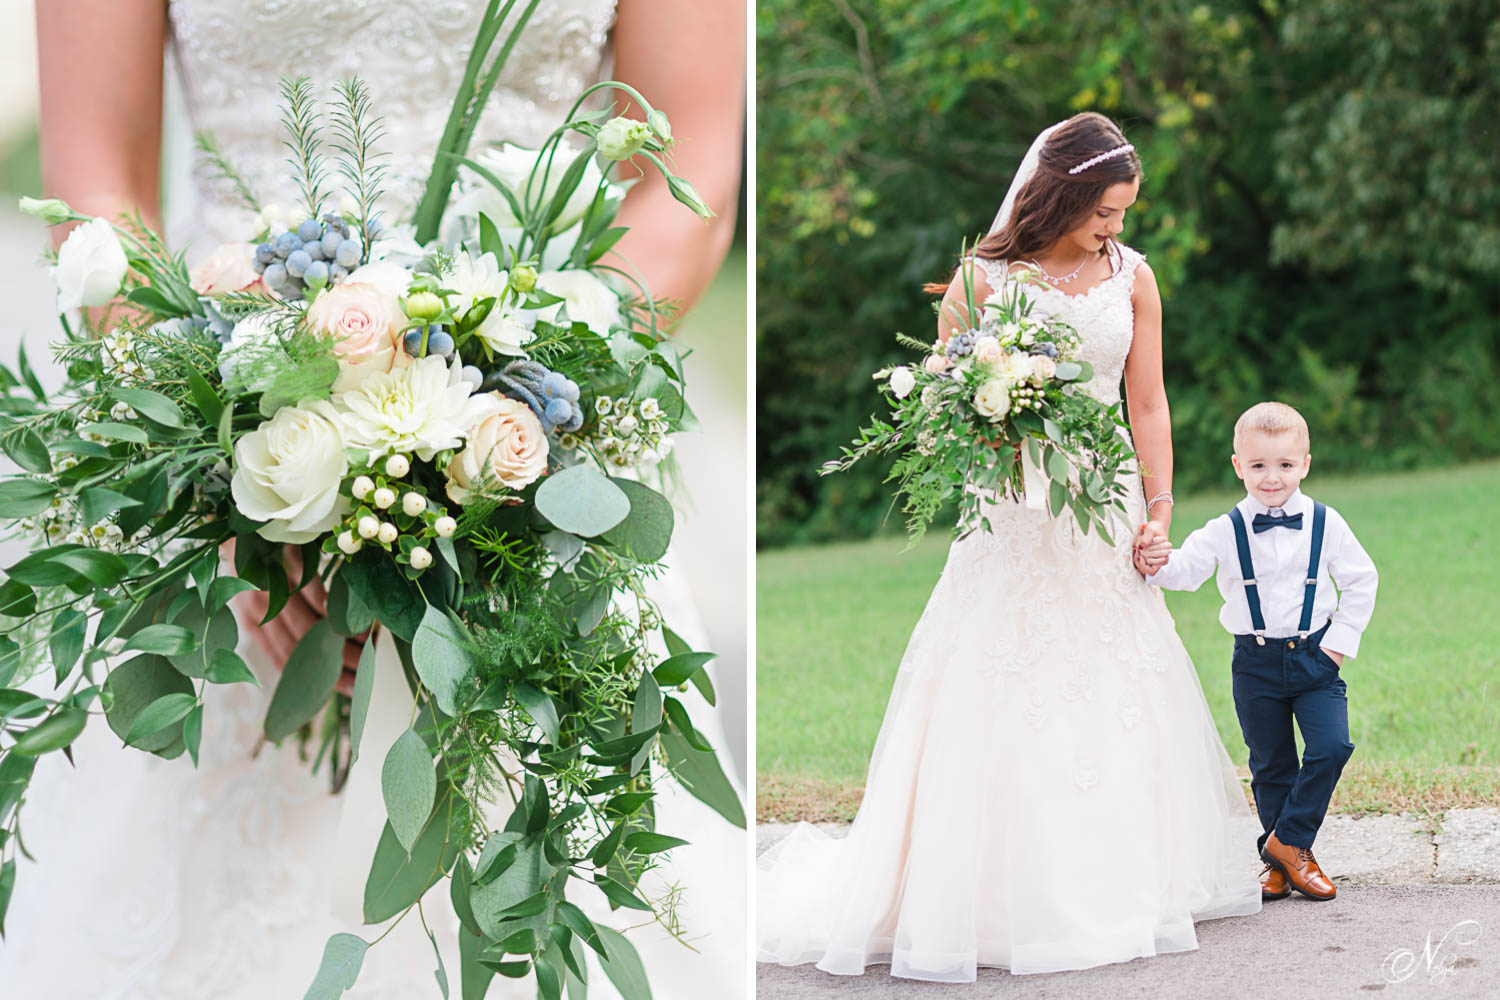 greenery, pale pink roses and white rose bouquet. And Bride looking down at cutest little ring bearer.white